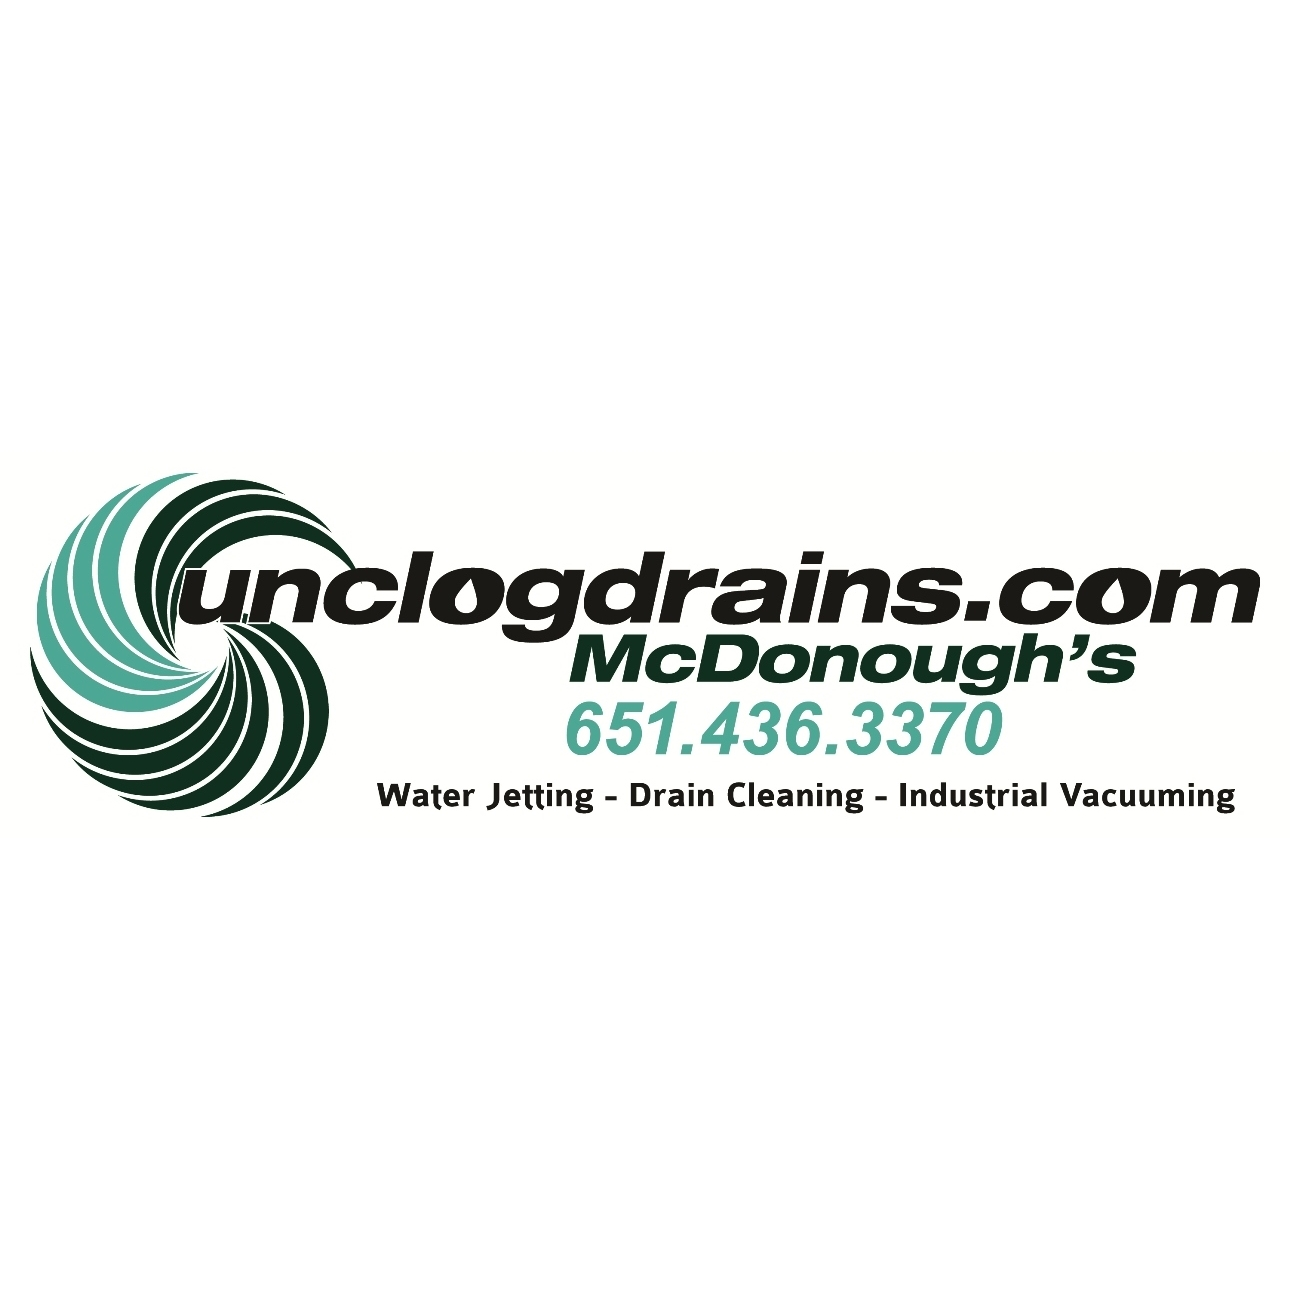 McDonough's - St Paul MN Sewer, Water Jetting, and Drain Cleaning